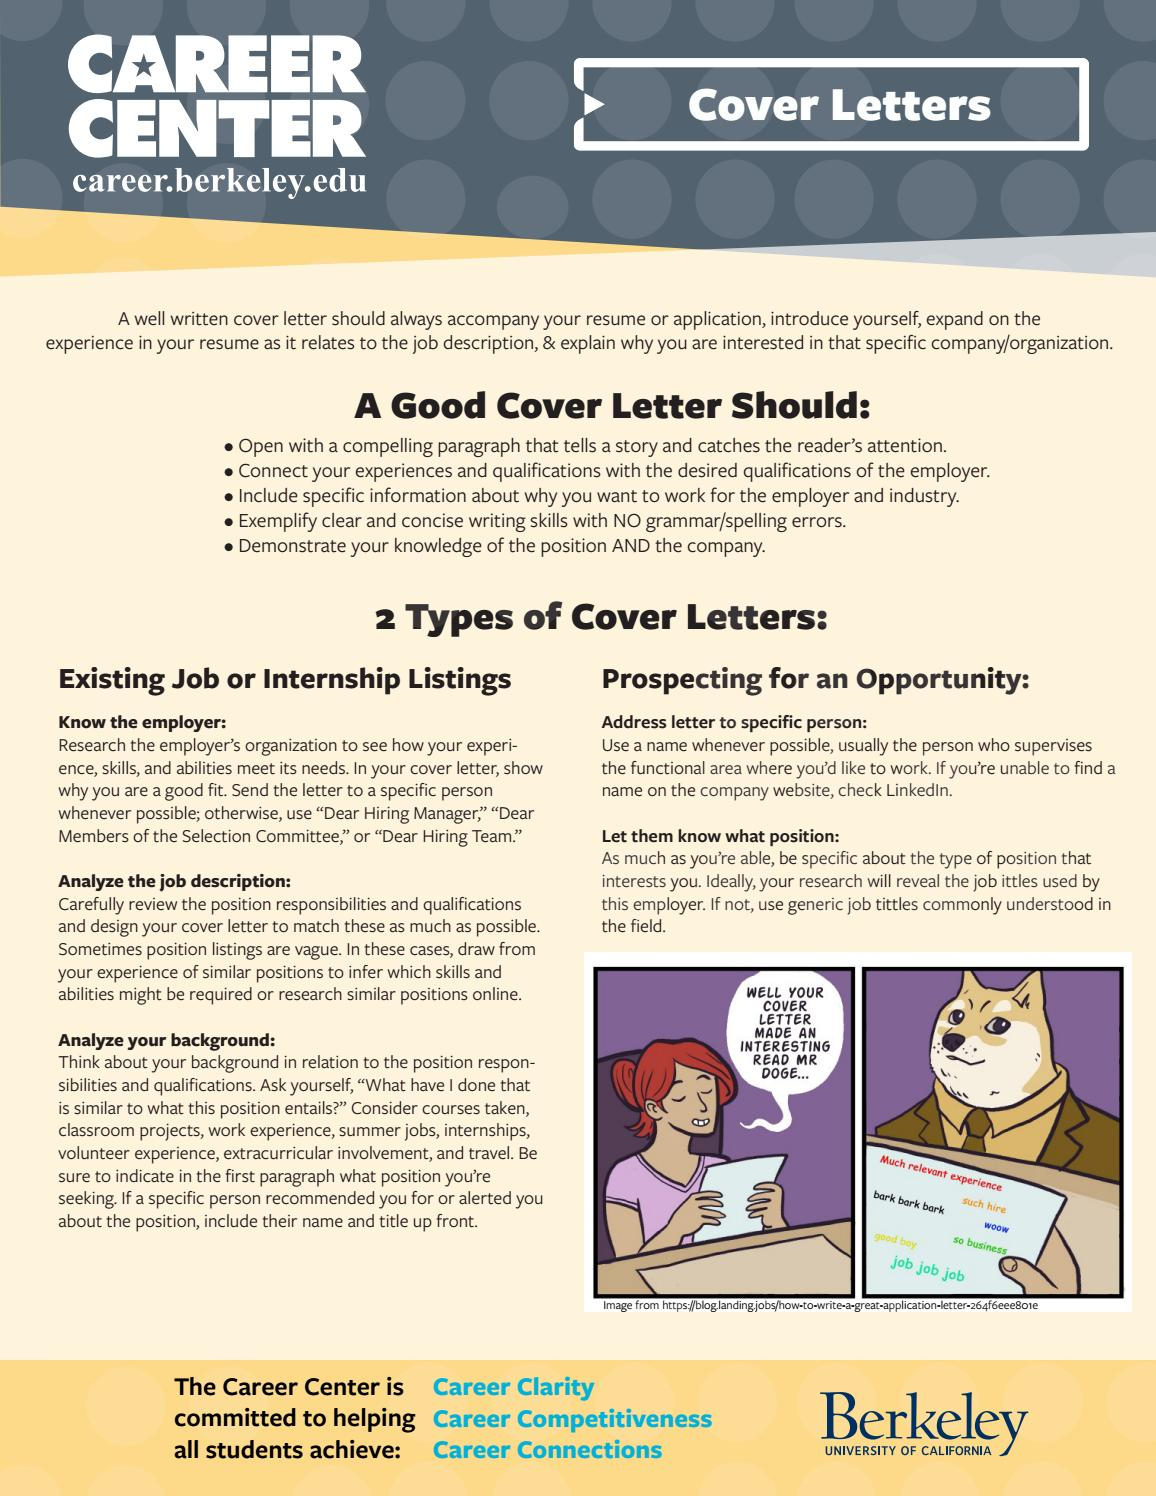 Bear Facts Writing Cover Letters For Jobs Internships By